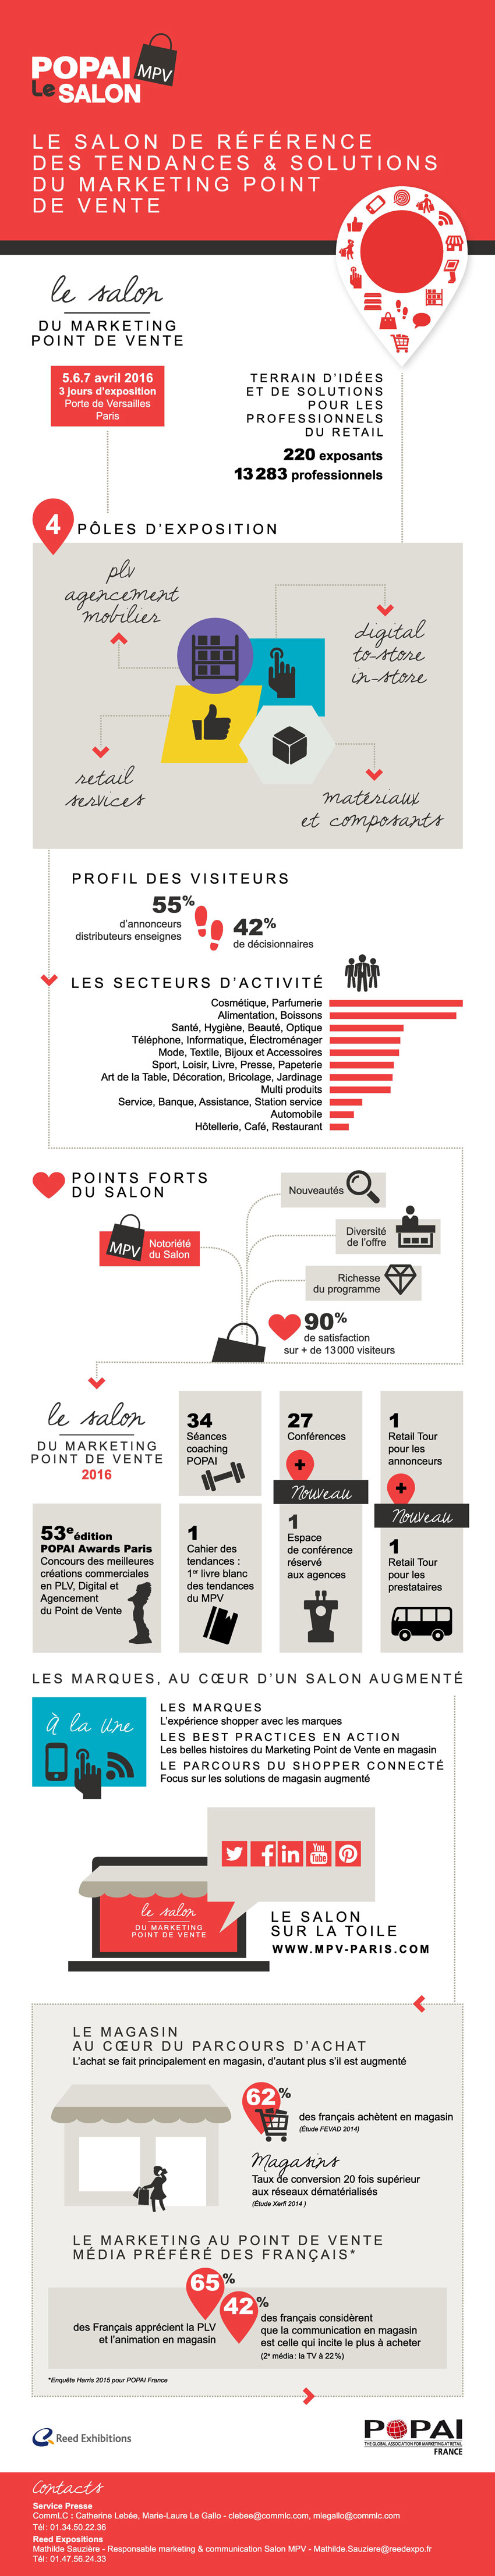 Salon Popai, marketing du point de vente